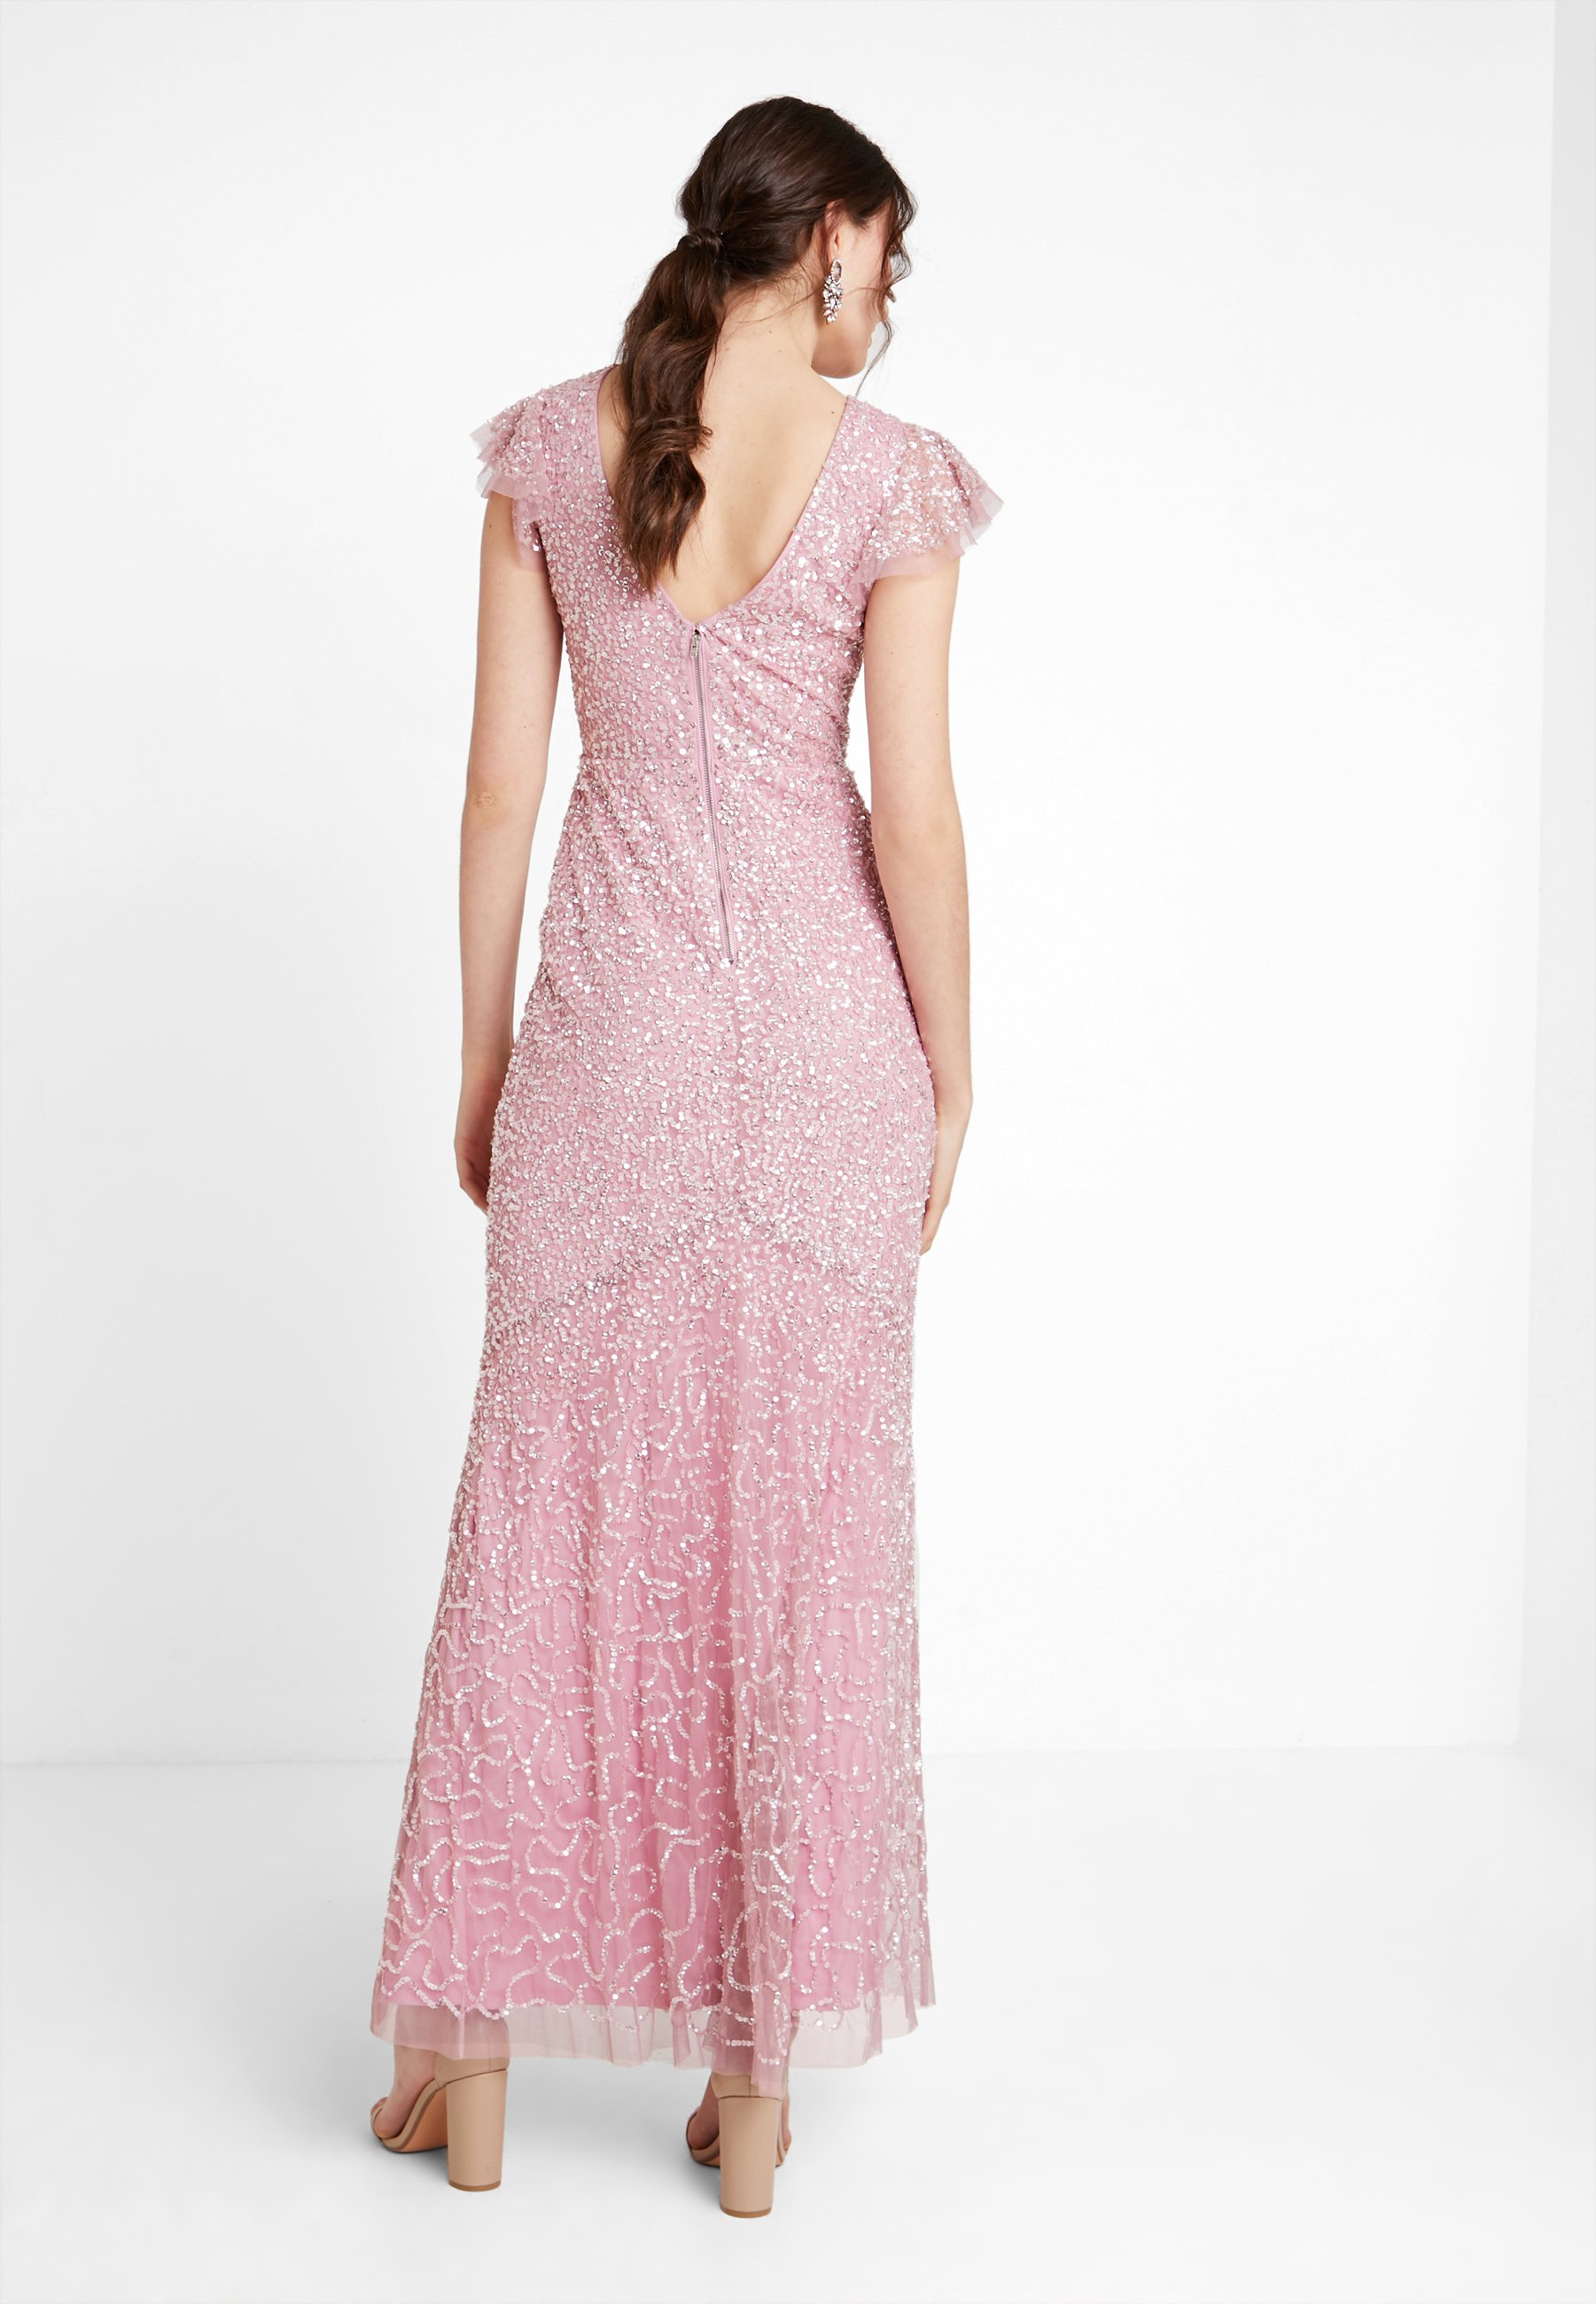 All With Flutter Da Over Embellished Pink Maxi SleeveAbito Sera Deluxe Maya Dress XiZOkPu